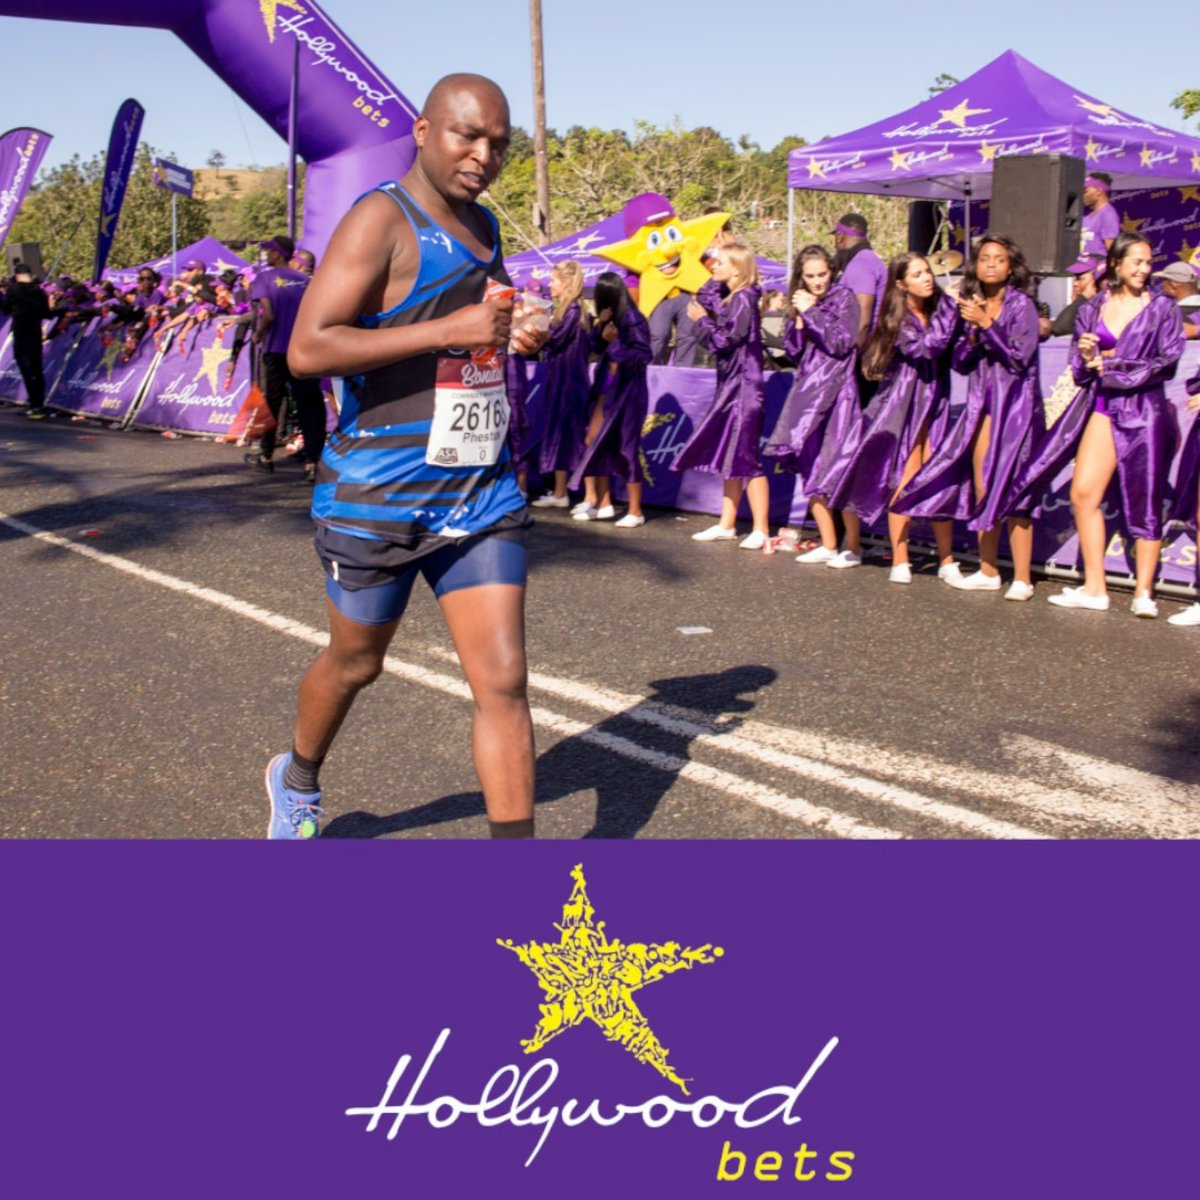 Purple! Purple! Purple! 🟣🟣🟣  The @ComradesRace @Hollywoodbets refreshment station is always lively! 💃🏾💃🏾💃🏾💜💜💜  @Hollywoodbets is an Official Sports Betting Partner to the @ComradesRace   #HollywoodBetsComrades #ComradesSponsor https://t.co/tPt6QbUIgW